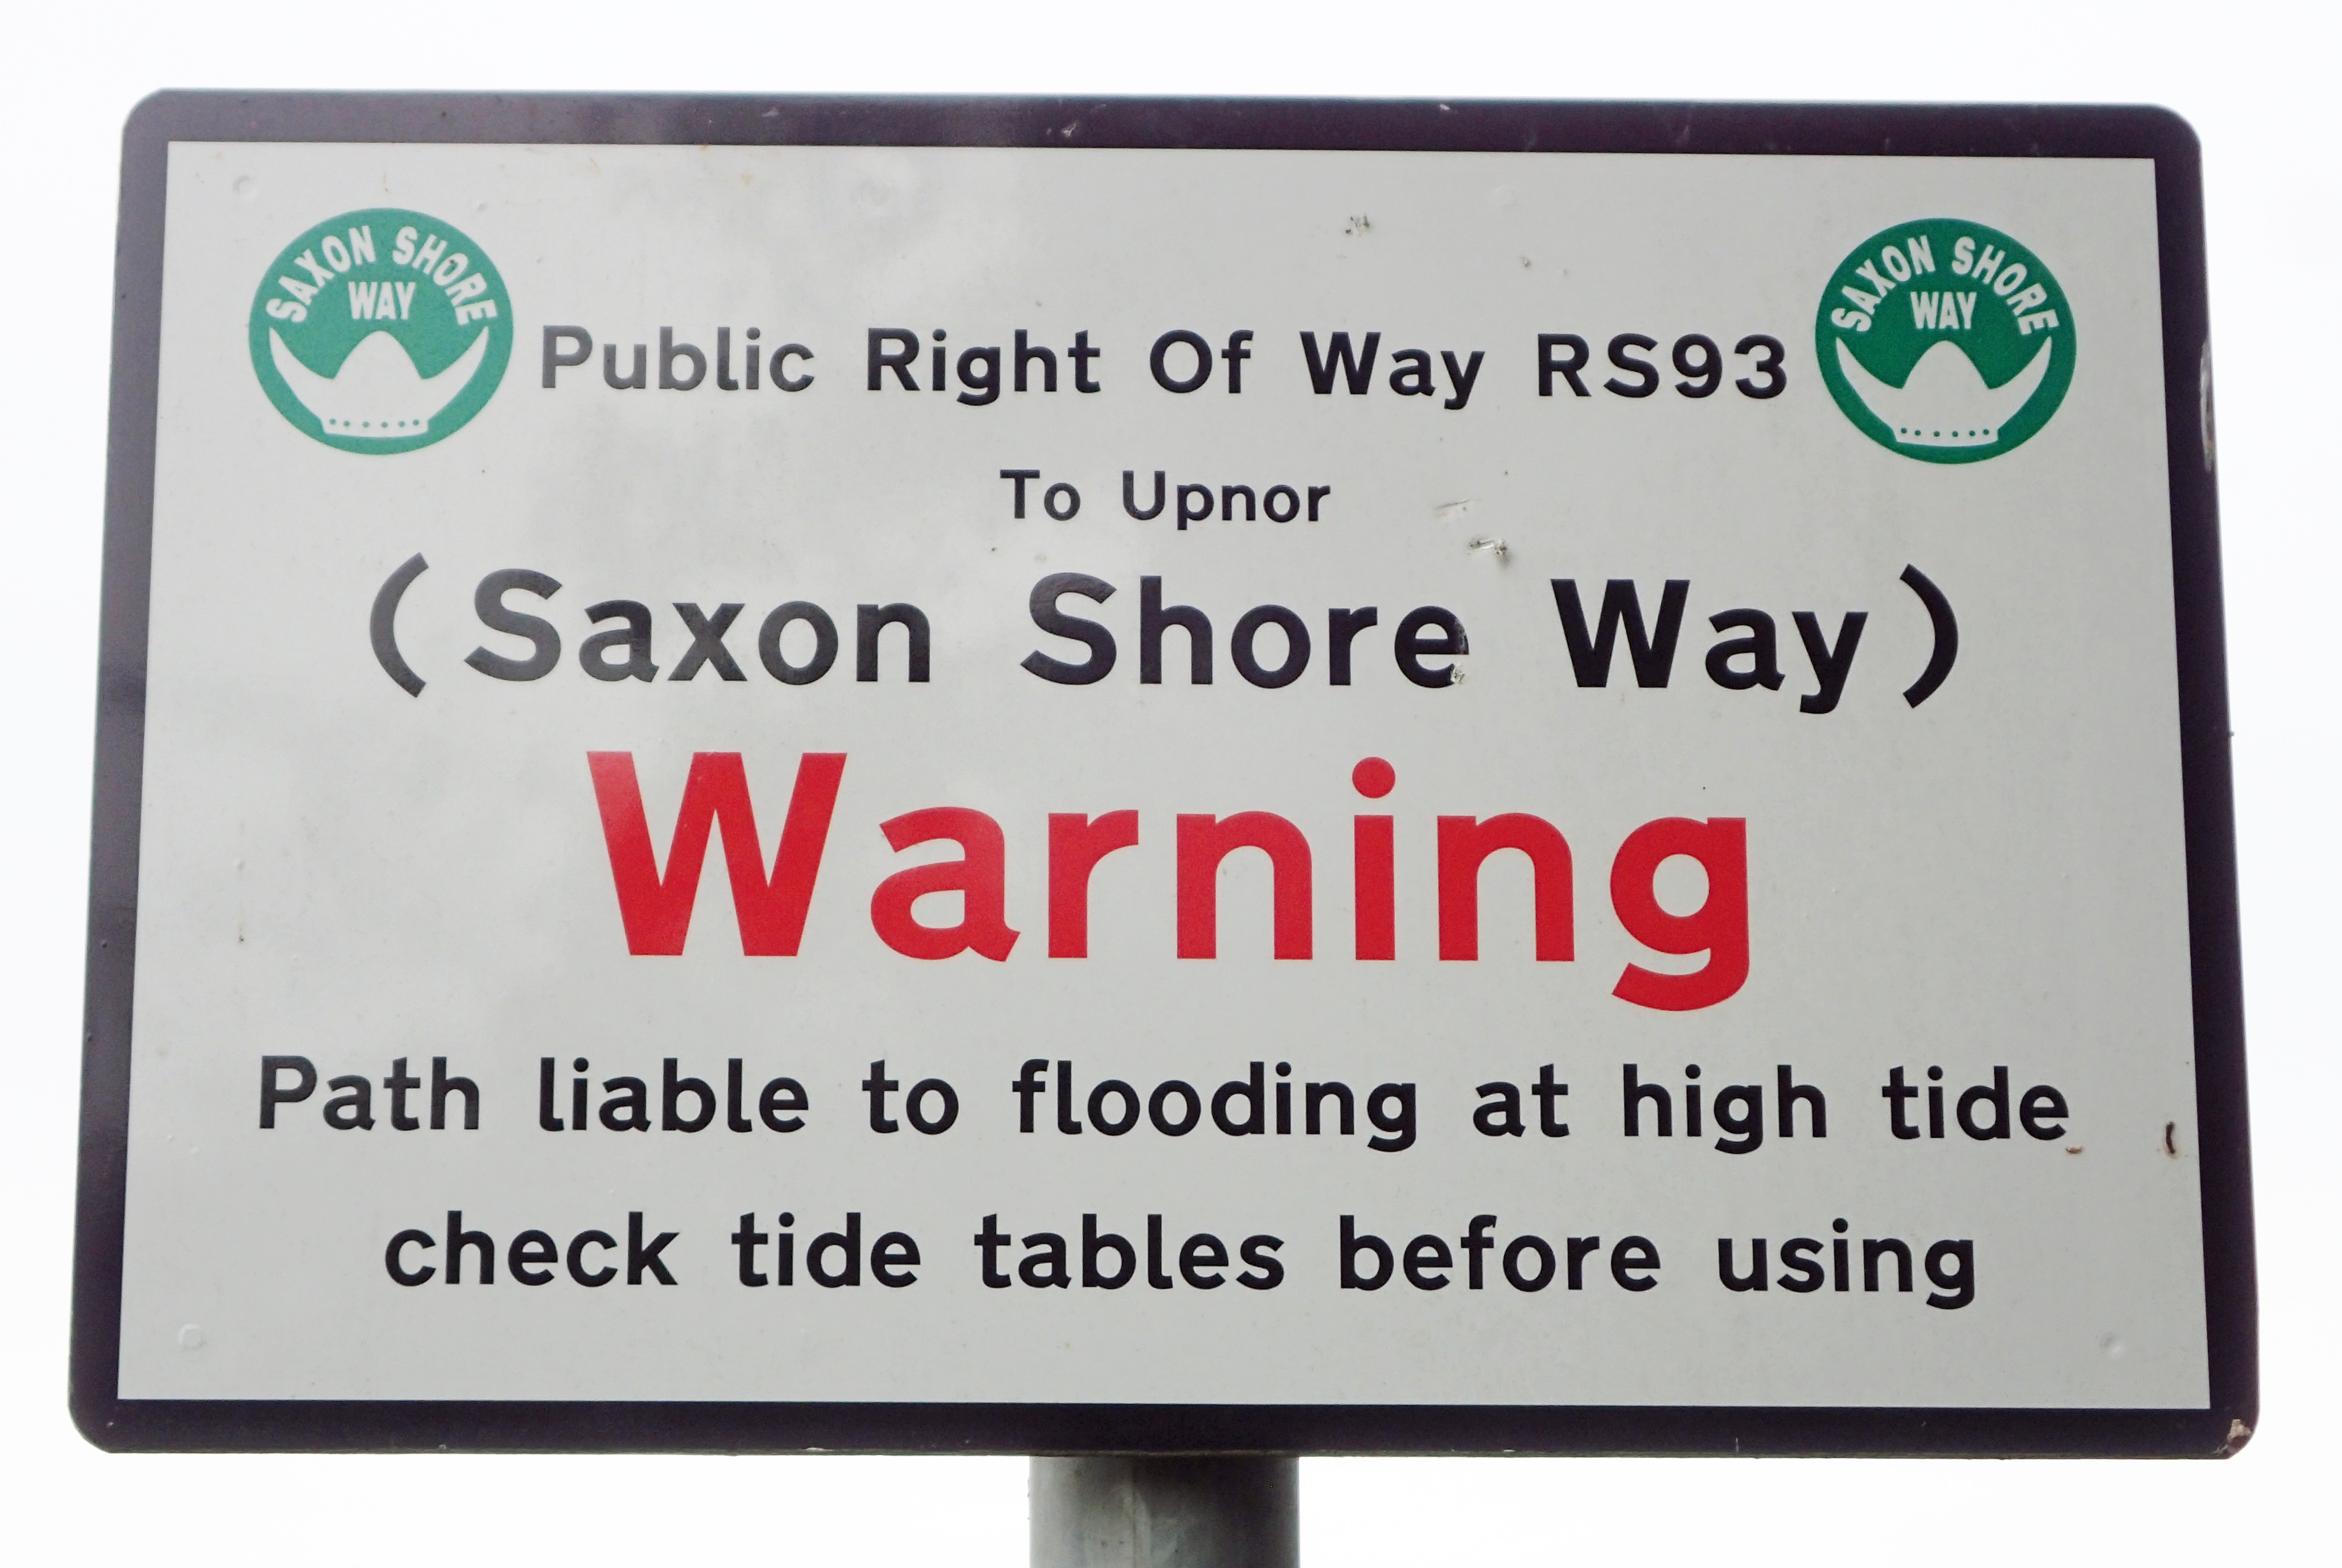 Saxon Shore Way is well sign posted for most of its length